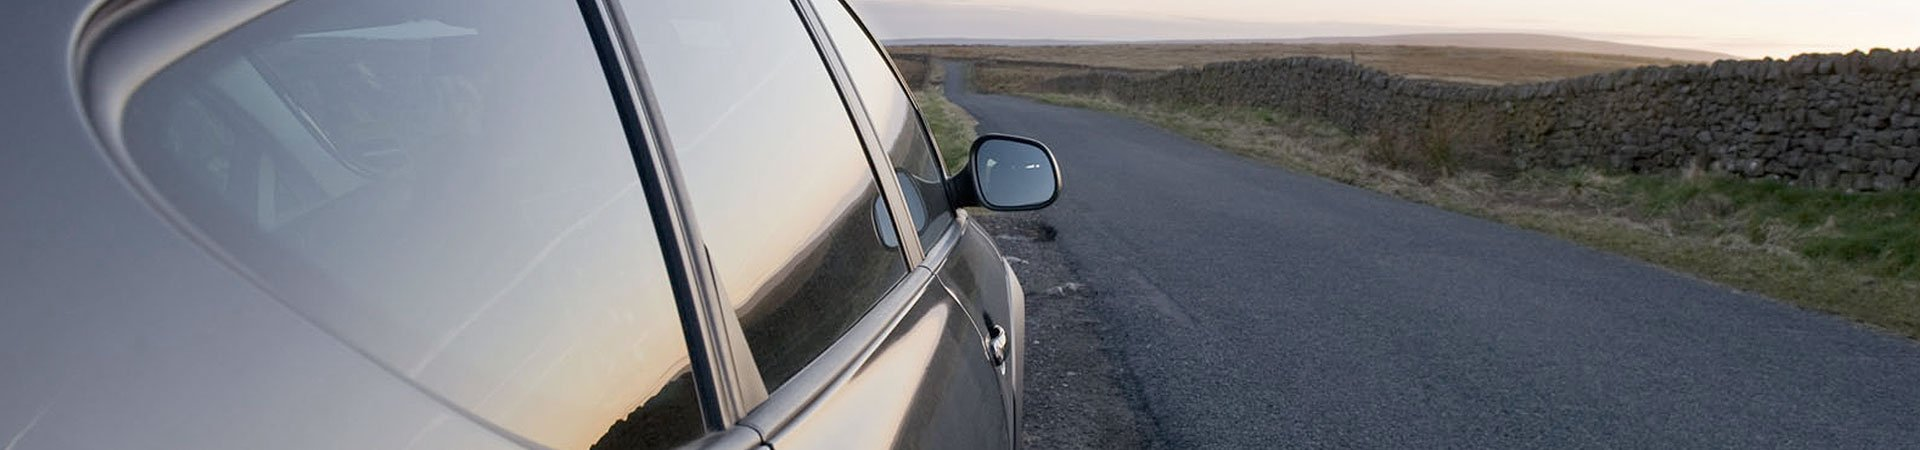 view of the car mirror